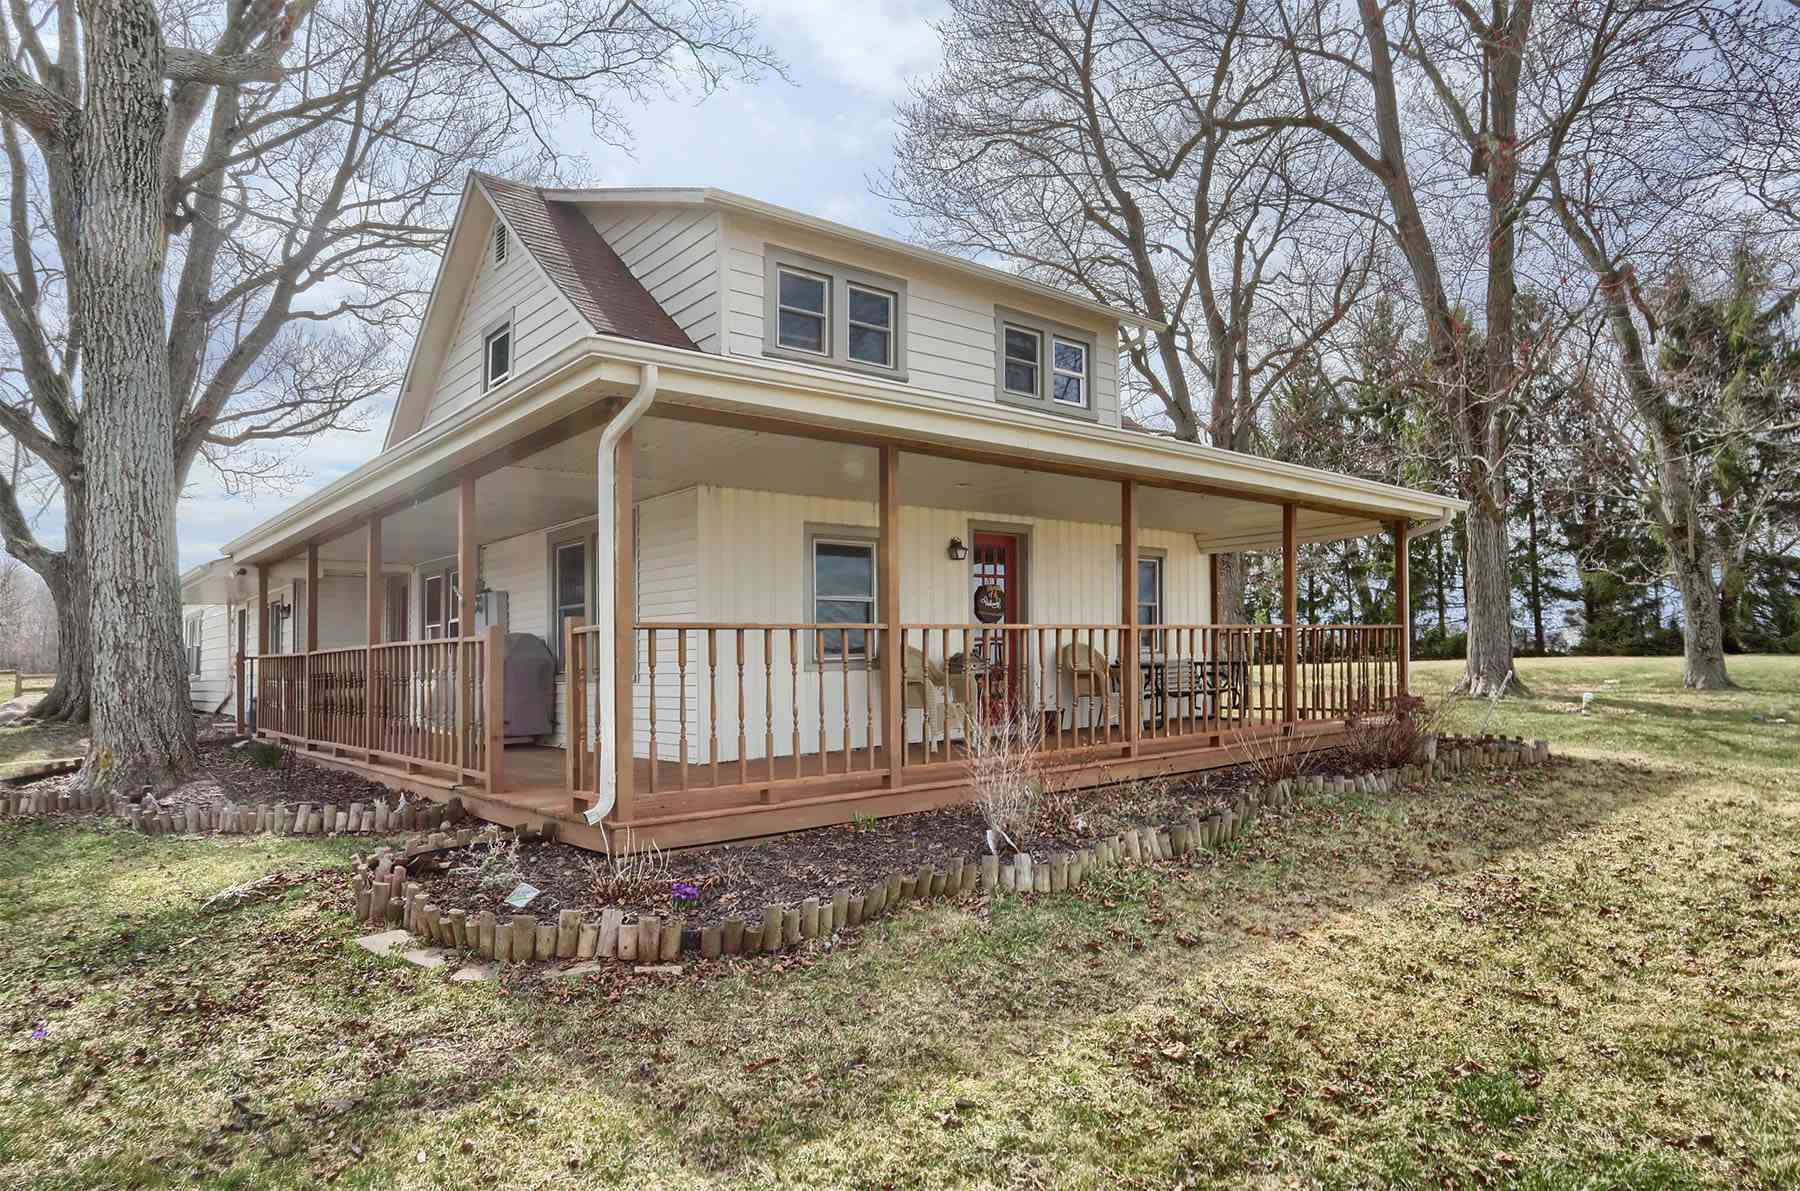 5909 E 1300 N, North Manchester, IN 46962